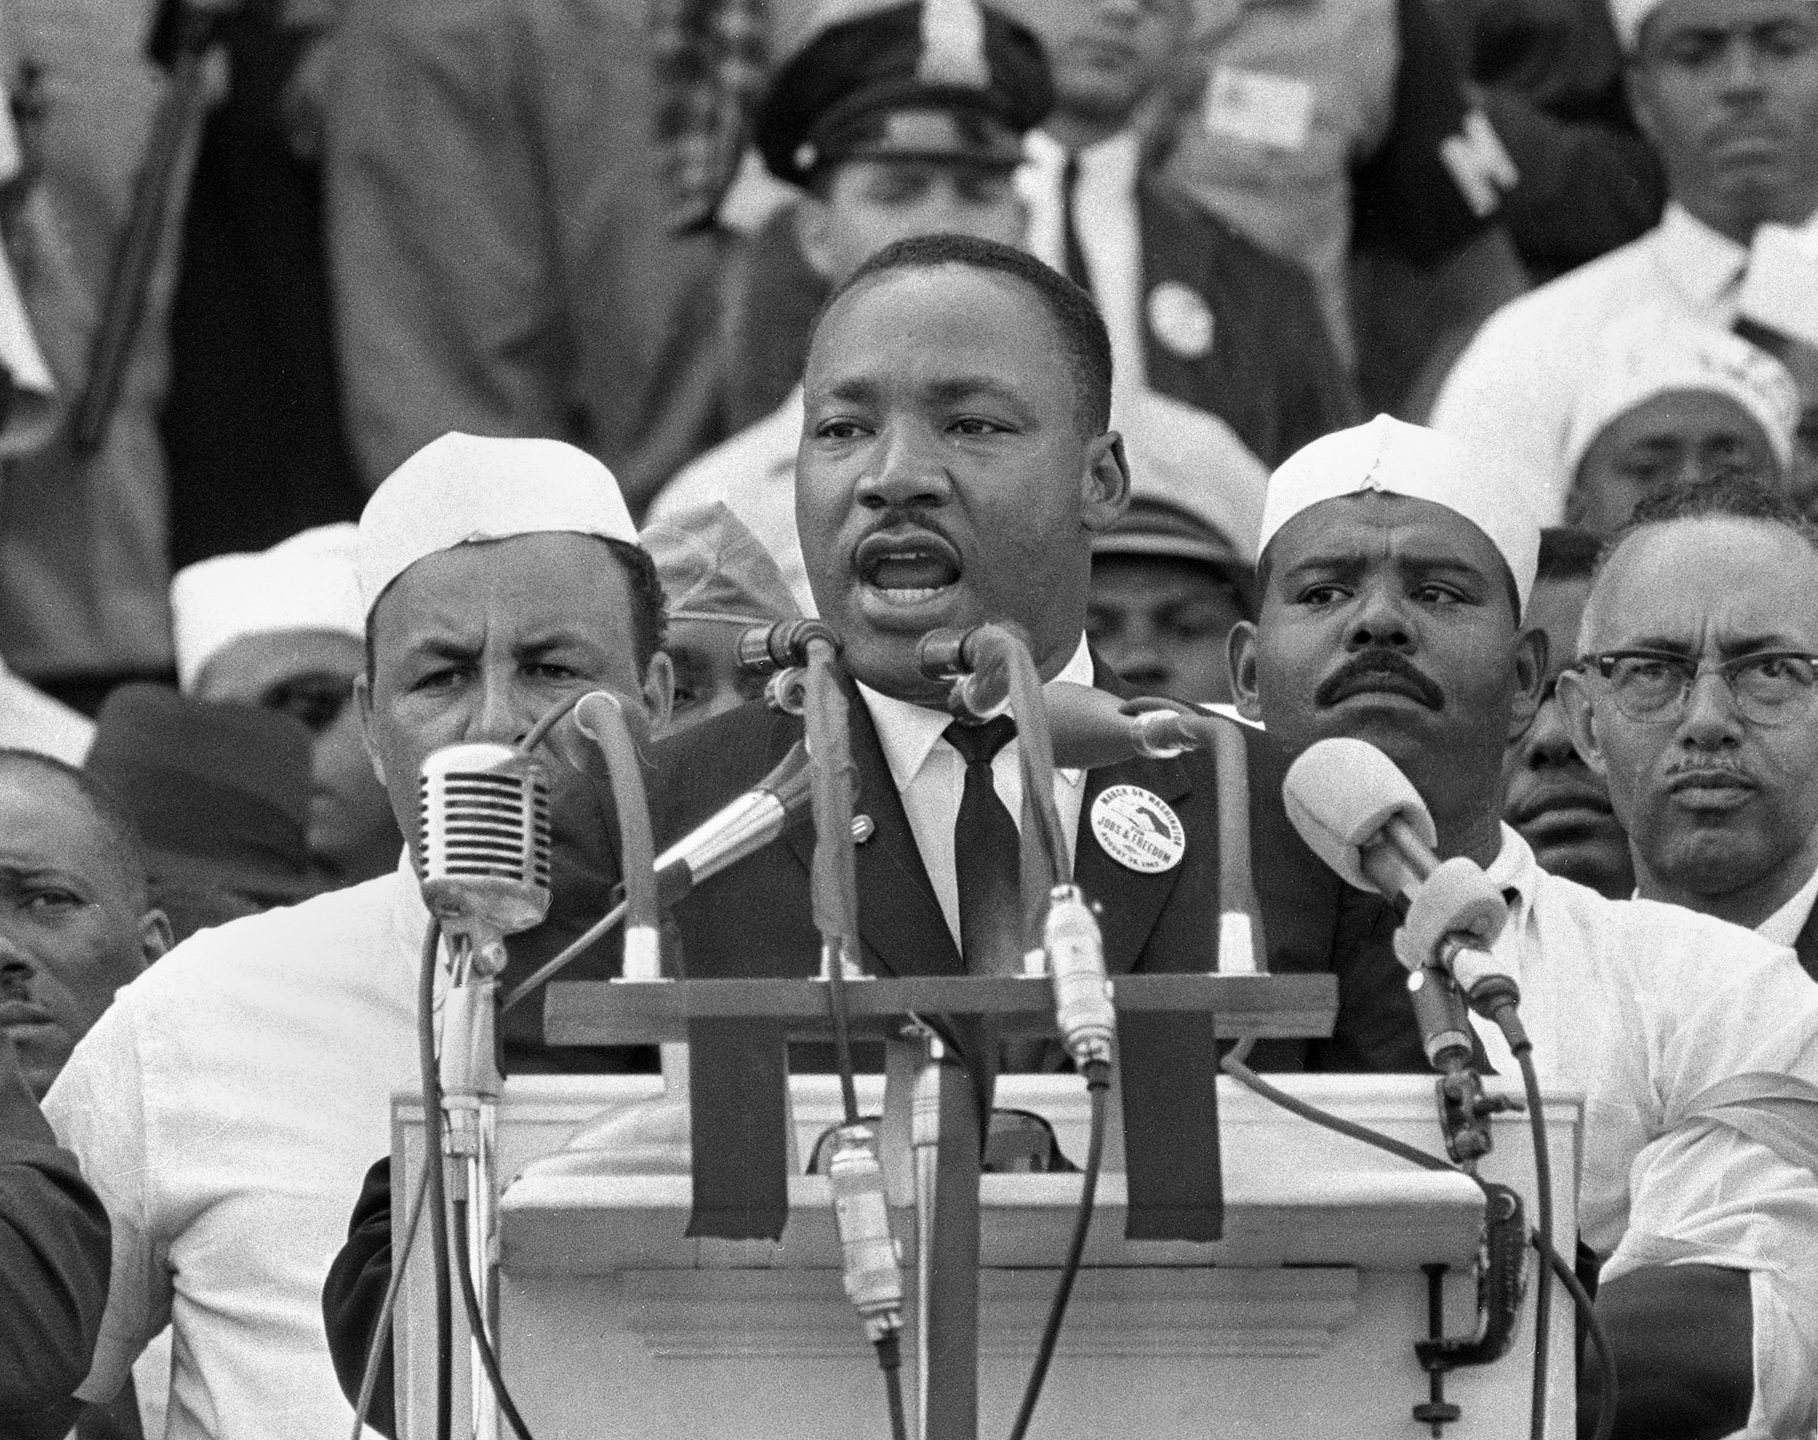 The true story behind MLK's iconic 'I Have a Dream' speech